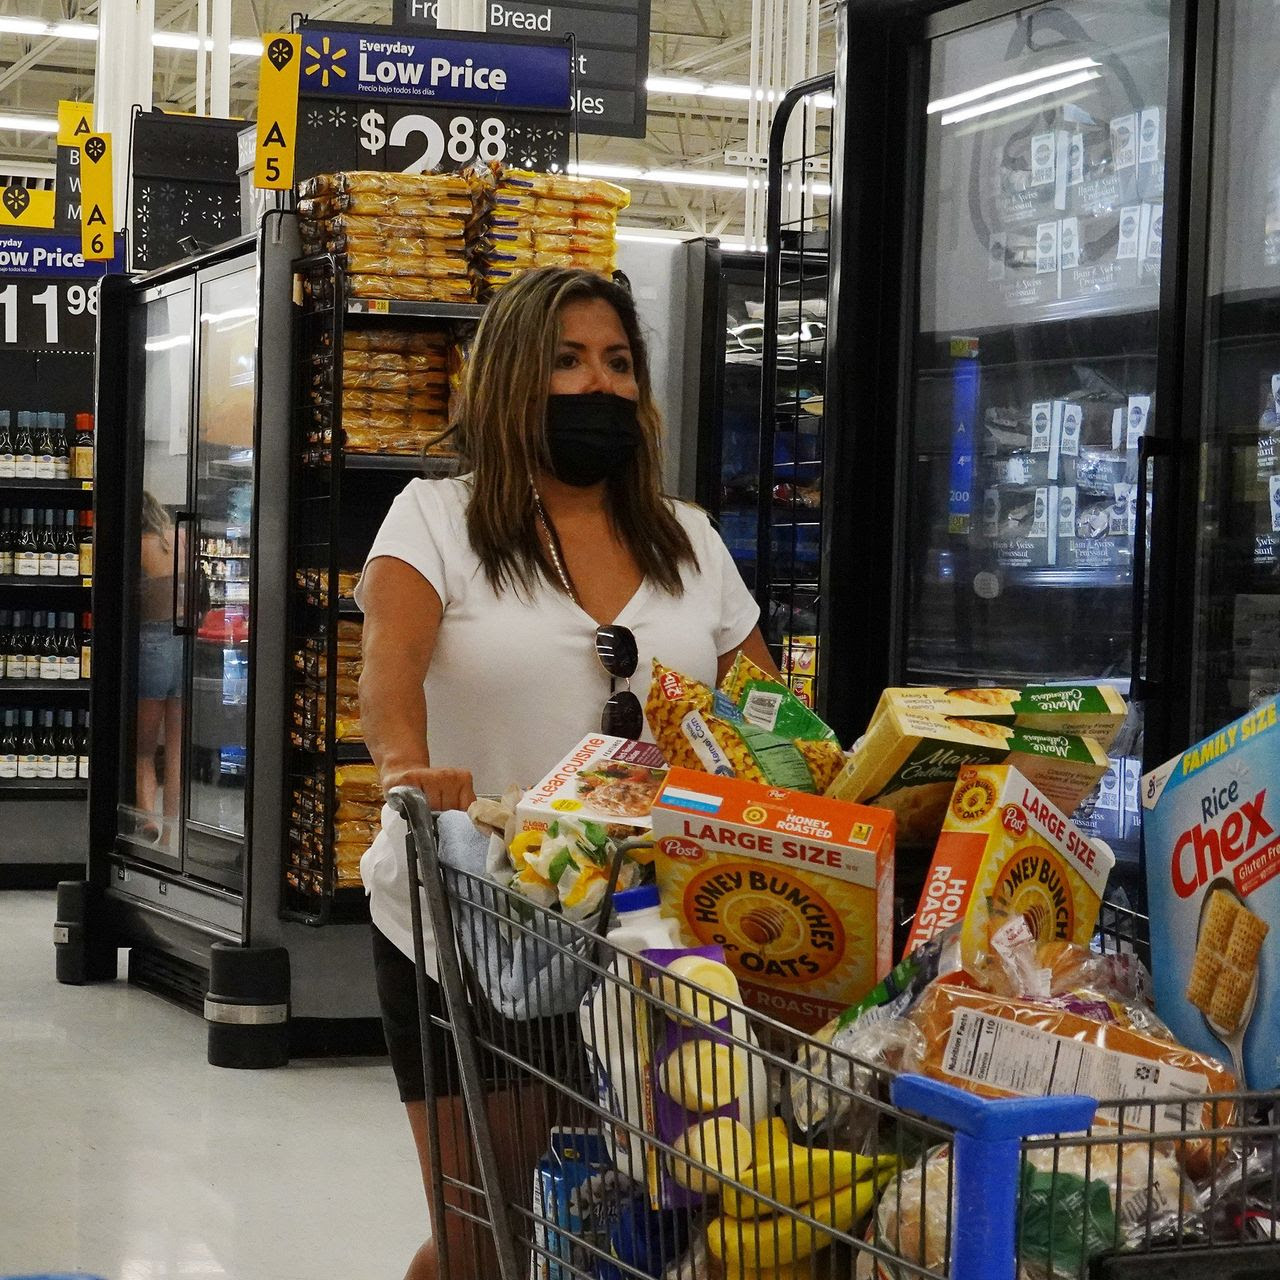 Companies Push Prices Higher, Fueling Inflation. Will They Keep Going?